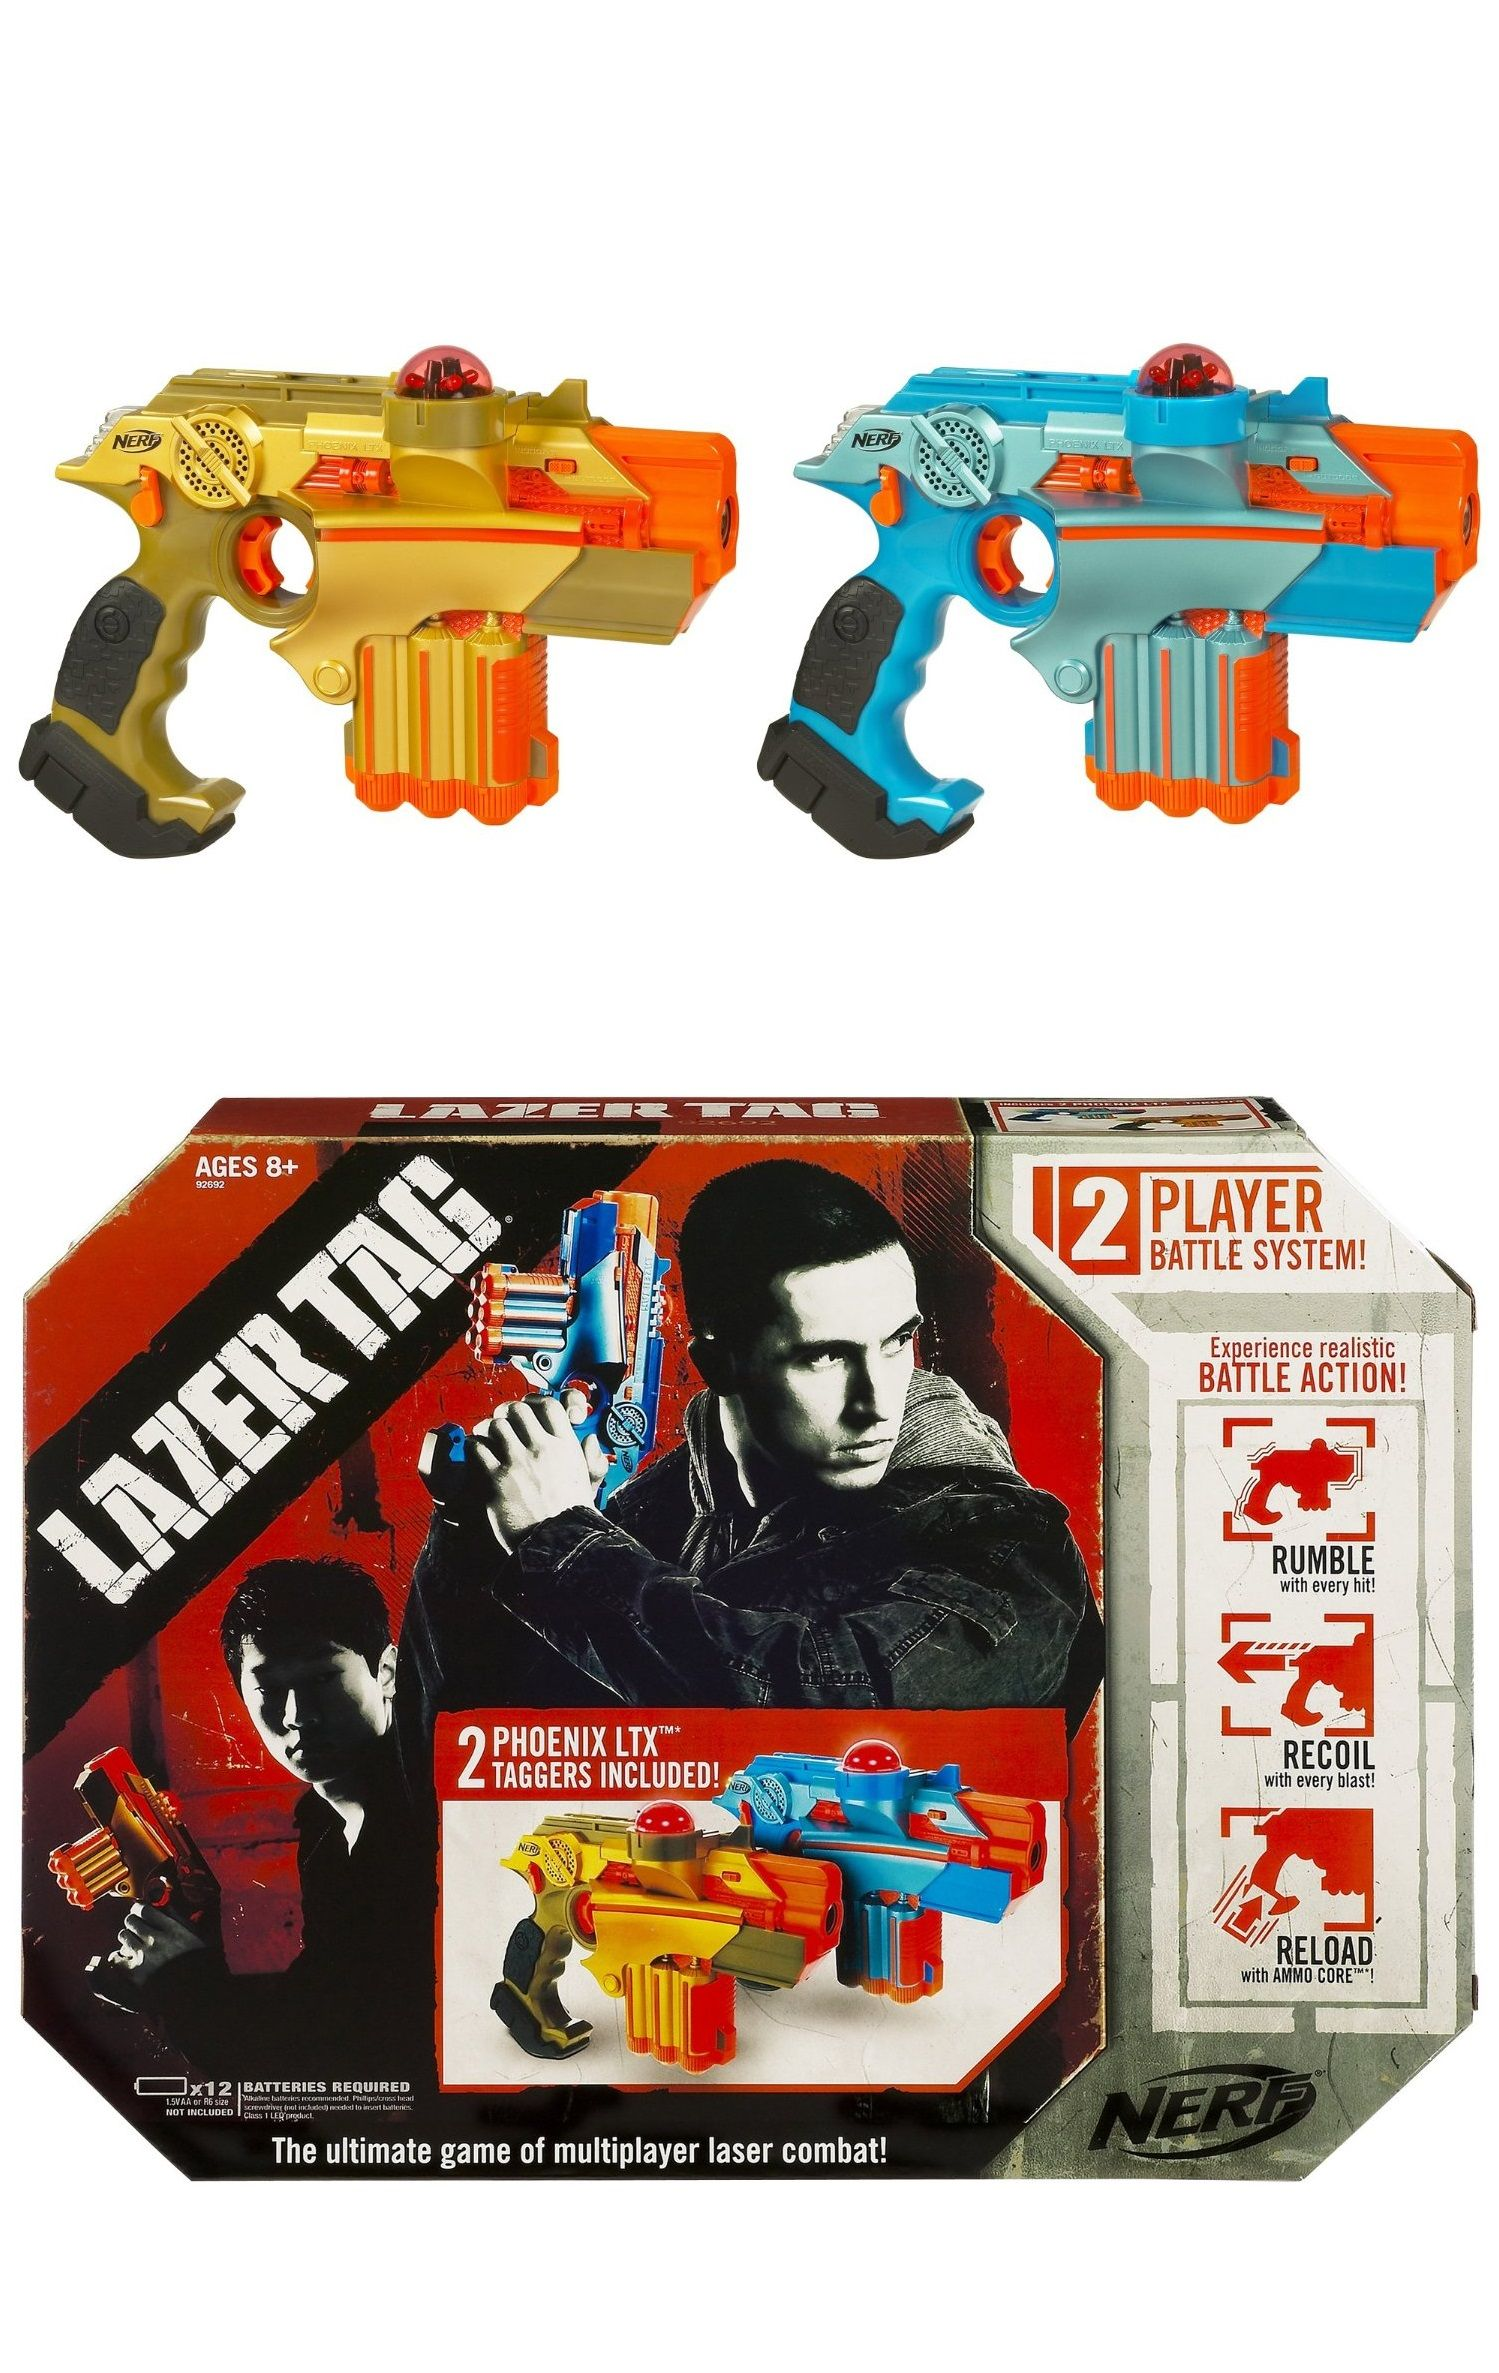 Nerf Lazer Tag Phoenix LTX Tagger 2 Pack plete 2 player system lets you